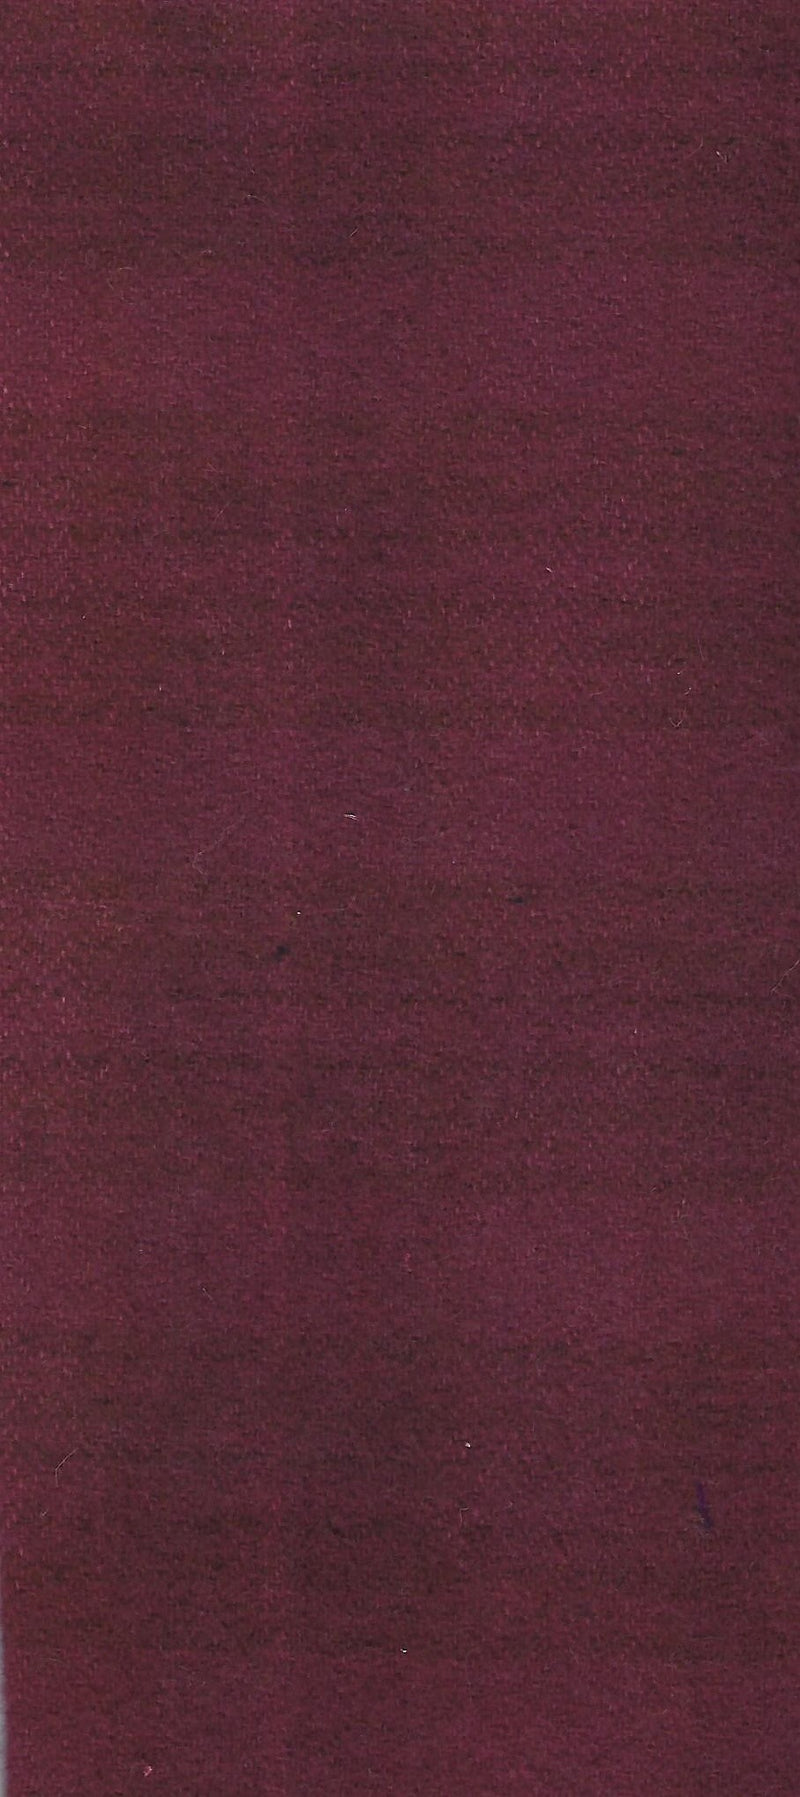 Hand Dyed Wool Chubby 9x10 Rosey Plum Plaid - Fabrics N Quilts